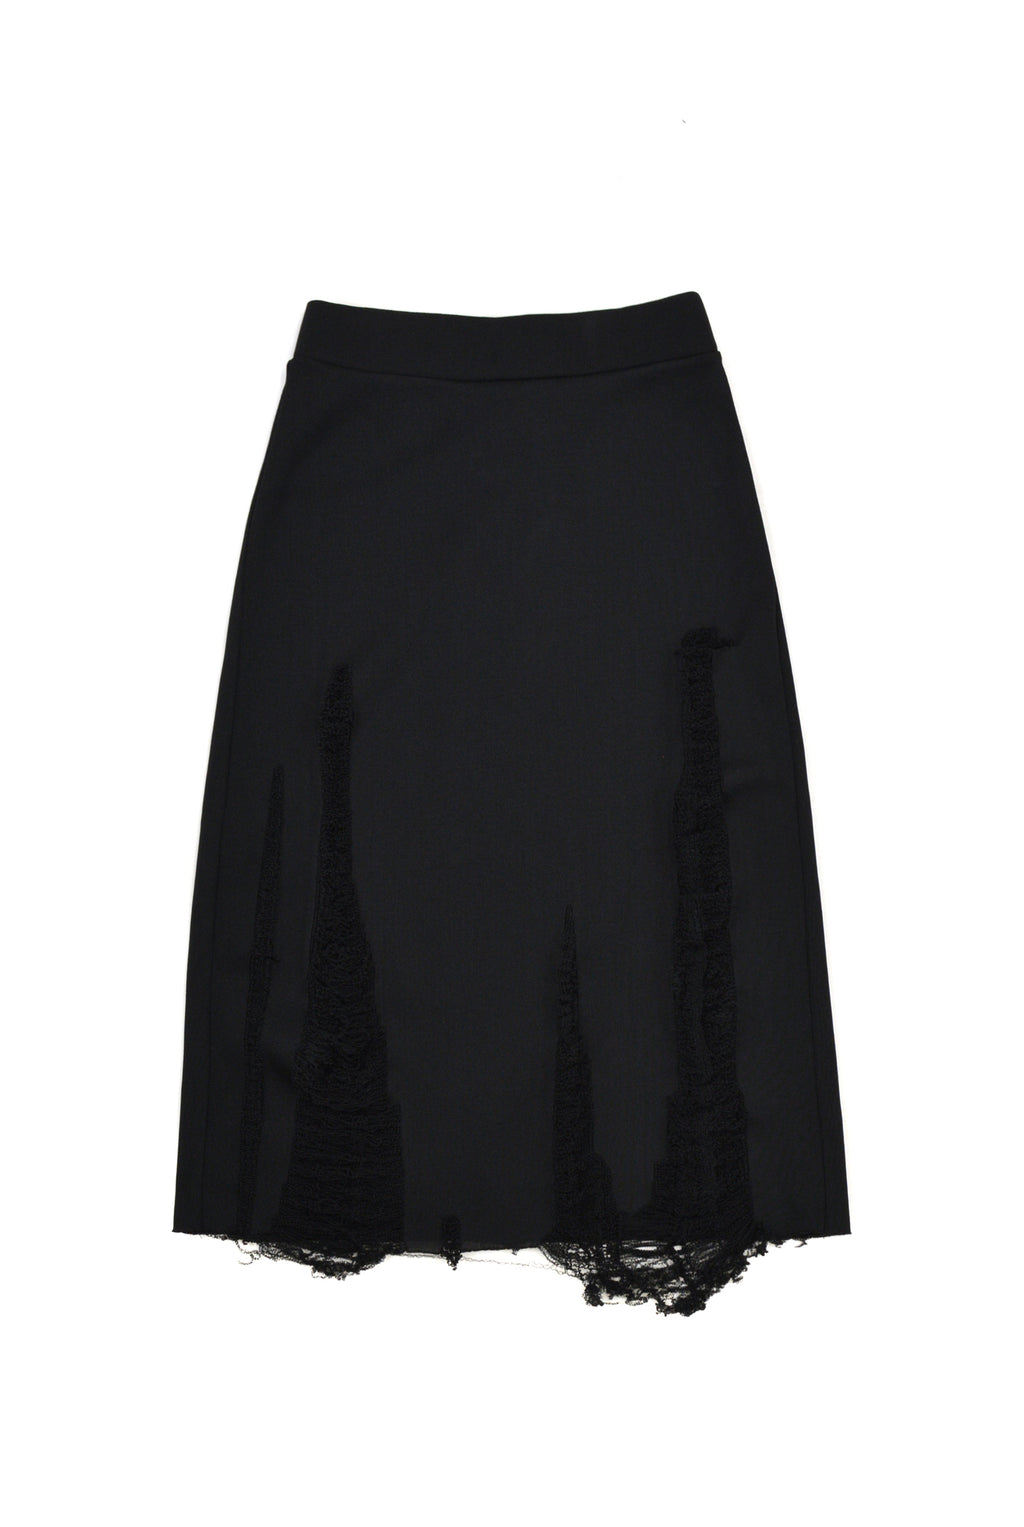 Vaquera Ripped Skirt